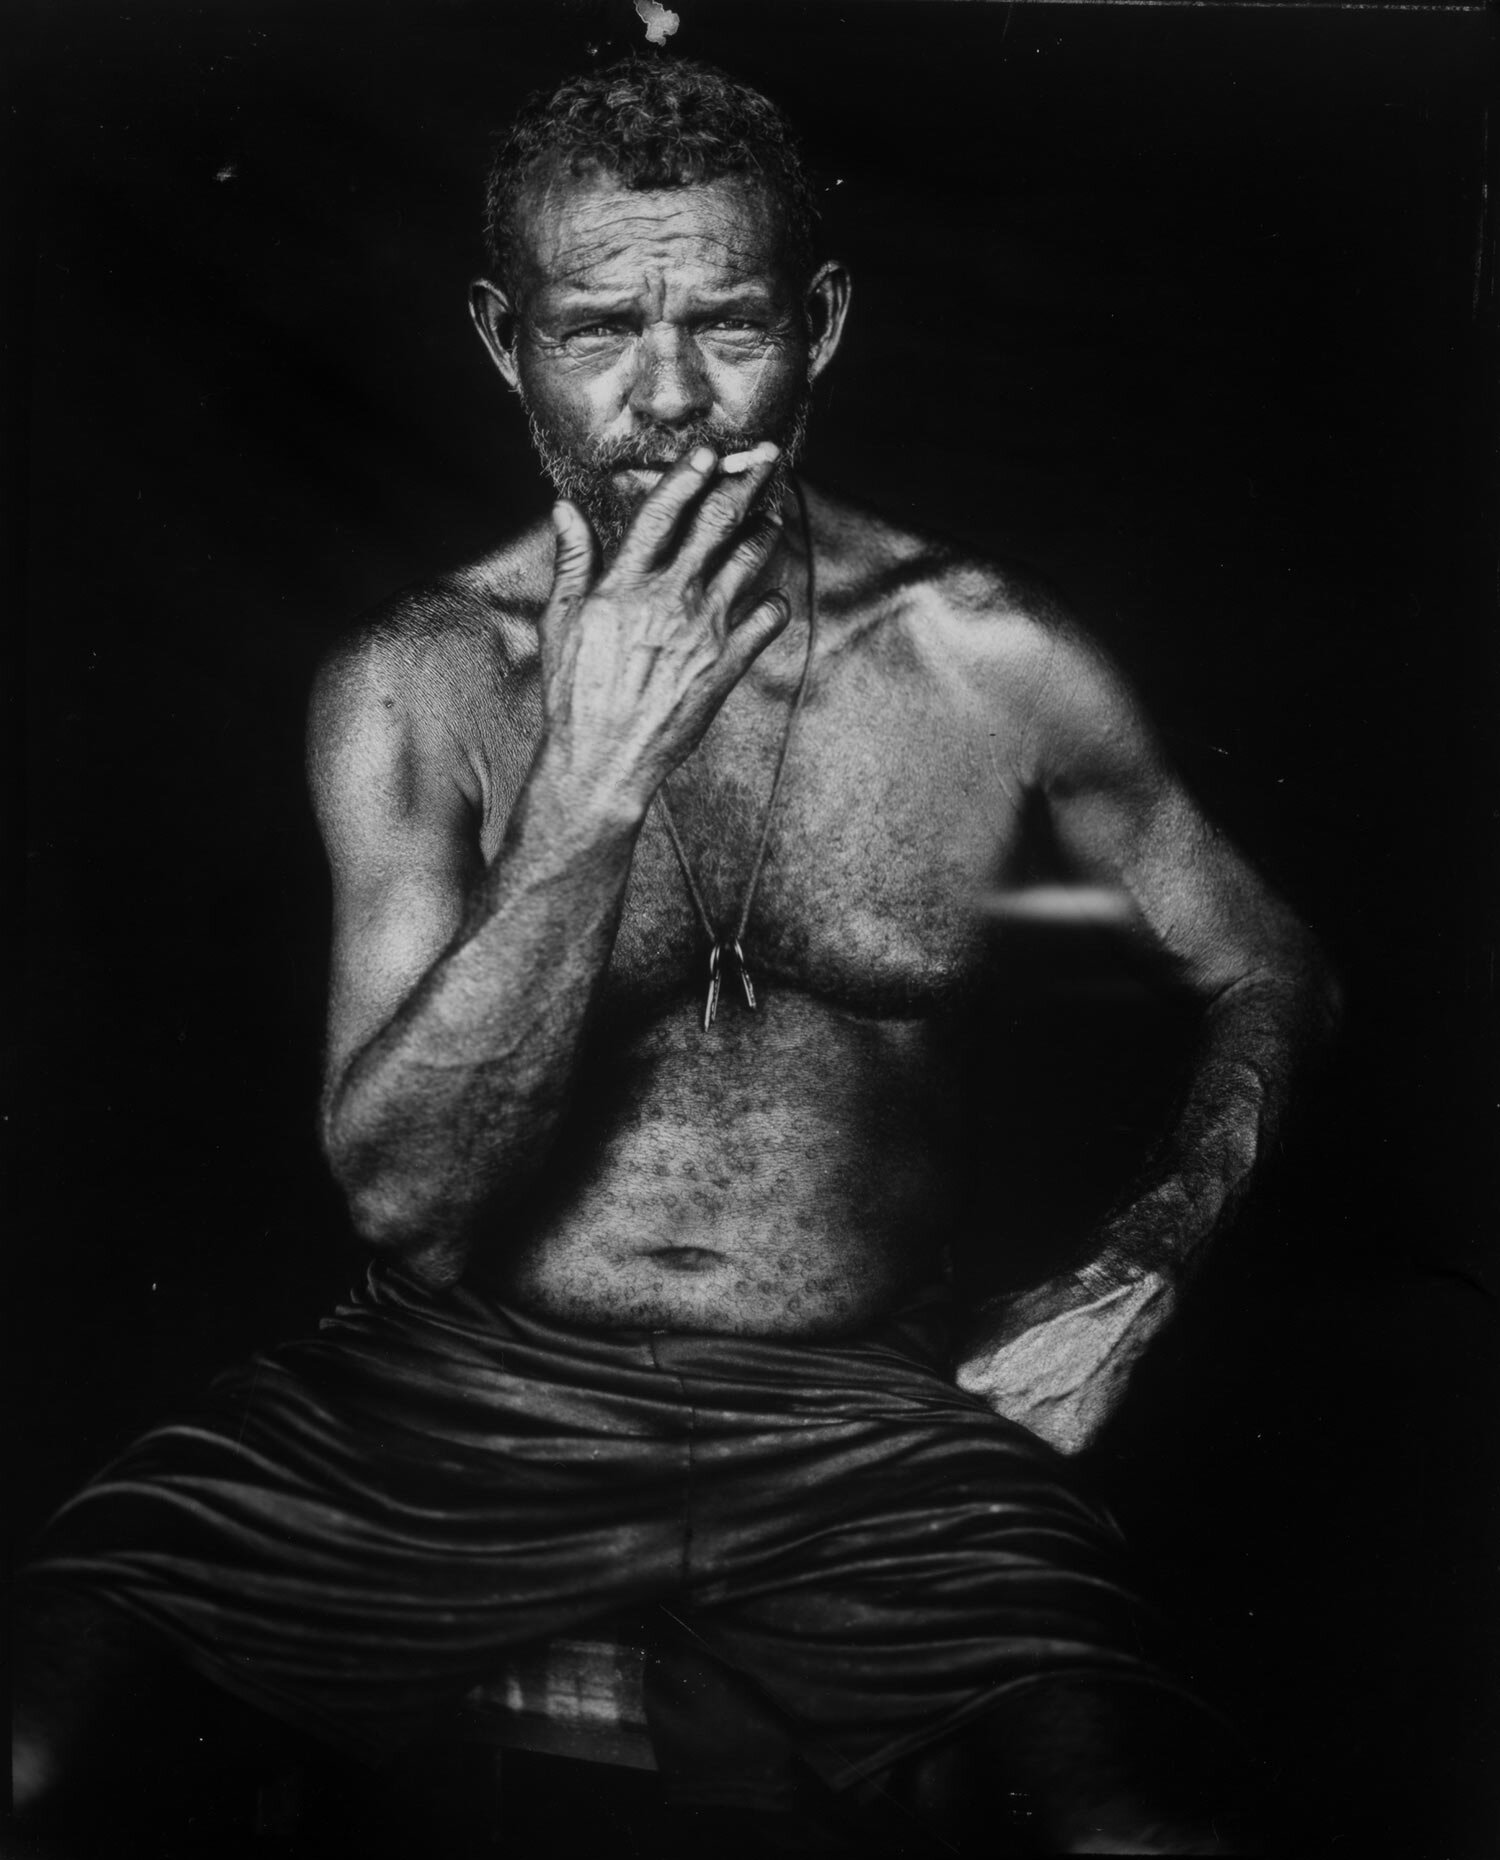 In black and white: Venezuelan fisherman among oil ruins - Veteran Associated Press photographer Rodrigo Abd set down his lightning-fast digital Canon and spread the tripod of his 19th century-style box camera to make black and white photos of the fisherman and the industrial decay they call home.See this series of portraits